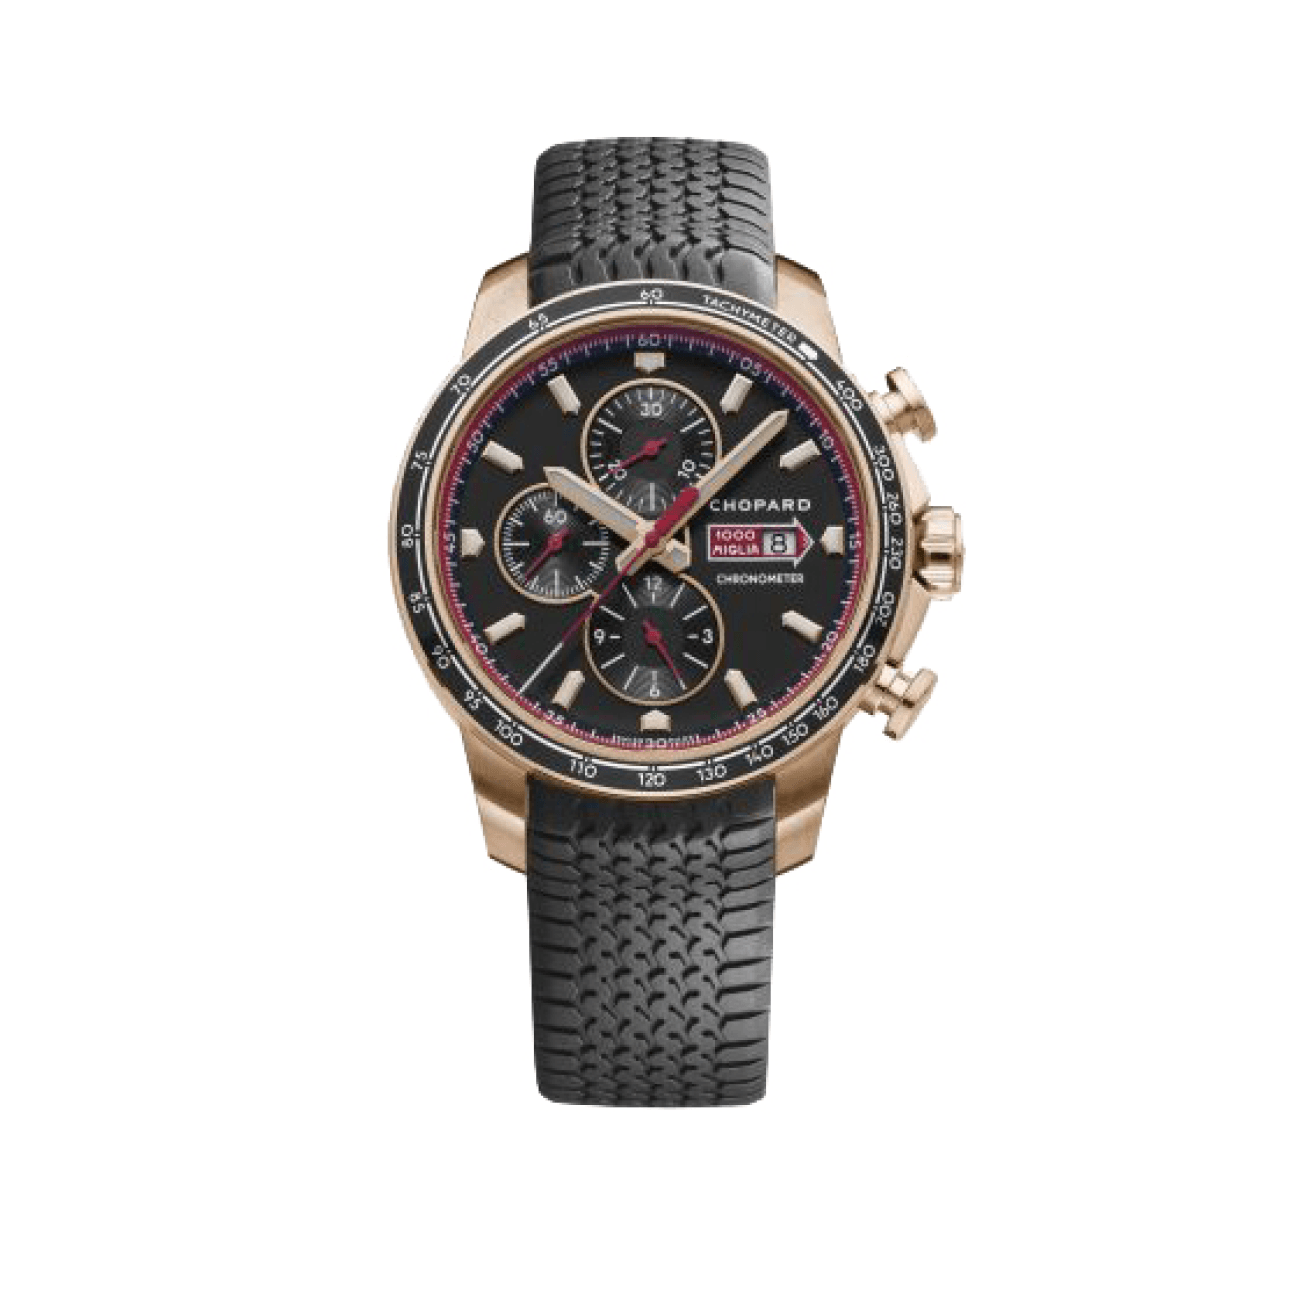 Chopard Watches - MILLE MIGLIA GTS CHRONO | Manfredi Jewels